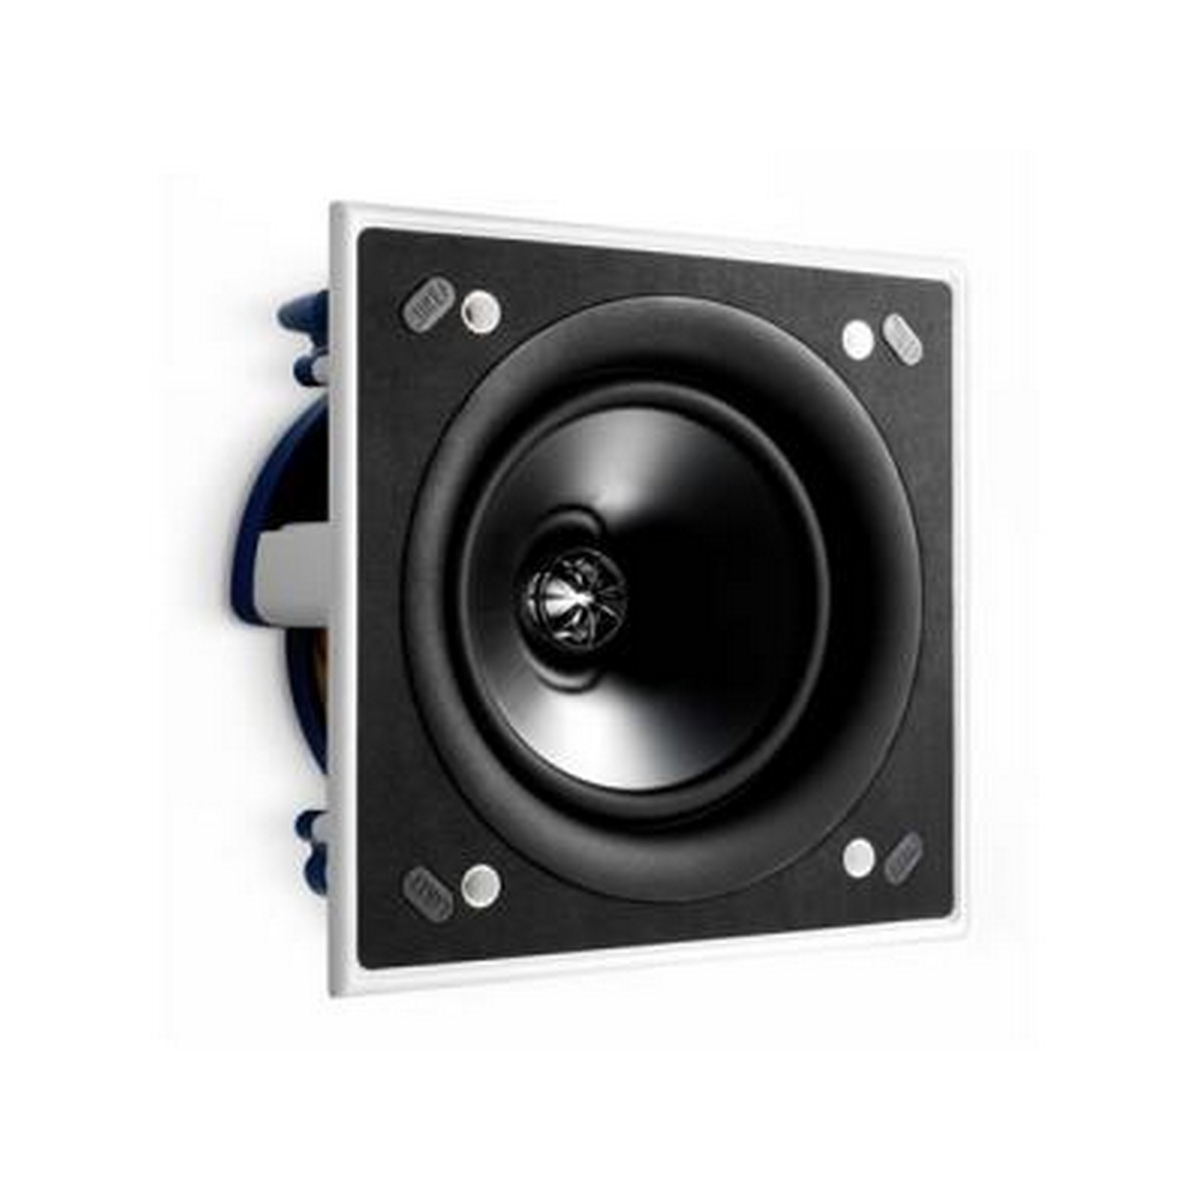 "Kef Ci160QSSquare in-wall or in-ceiling speaker featuring UTB™ Ultra Thin Bezel design. Amazingly strong magnetic grille. Features a 6.5"" Uni-Q driver array with a 1""aluminium dome tweeter and 'tangerine' waveguide"